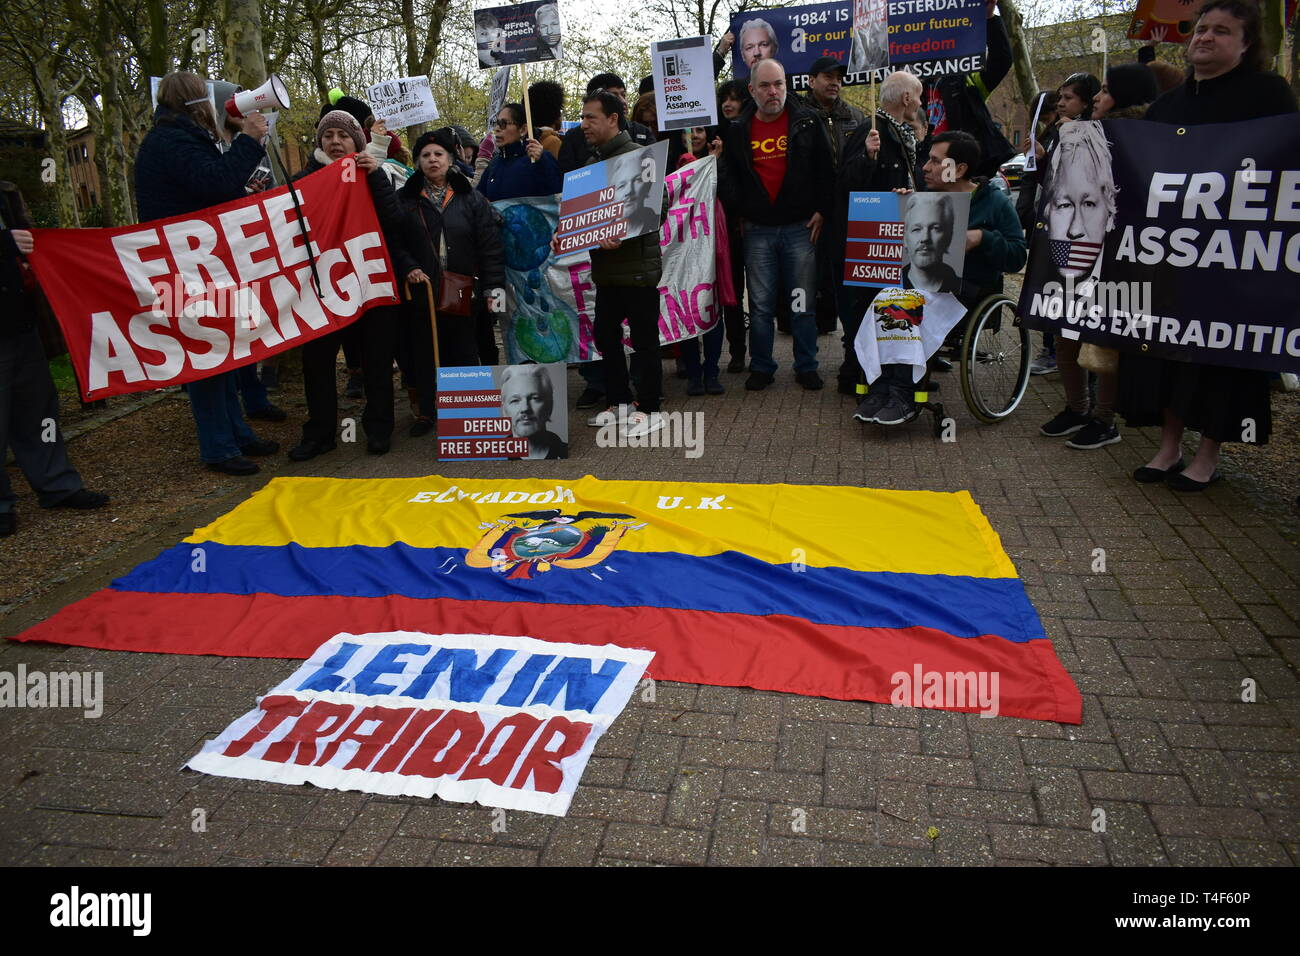 London, UK. April 13 2019. Assange supporters gather at Belmarsh Prison to demonstrate against his arrest and betrayal of asylum with Ecuador. Stock Photo